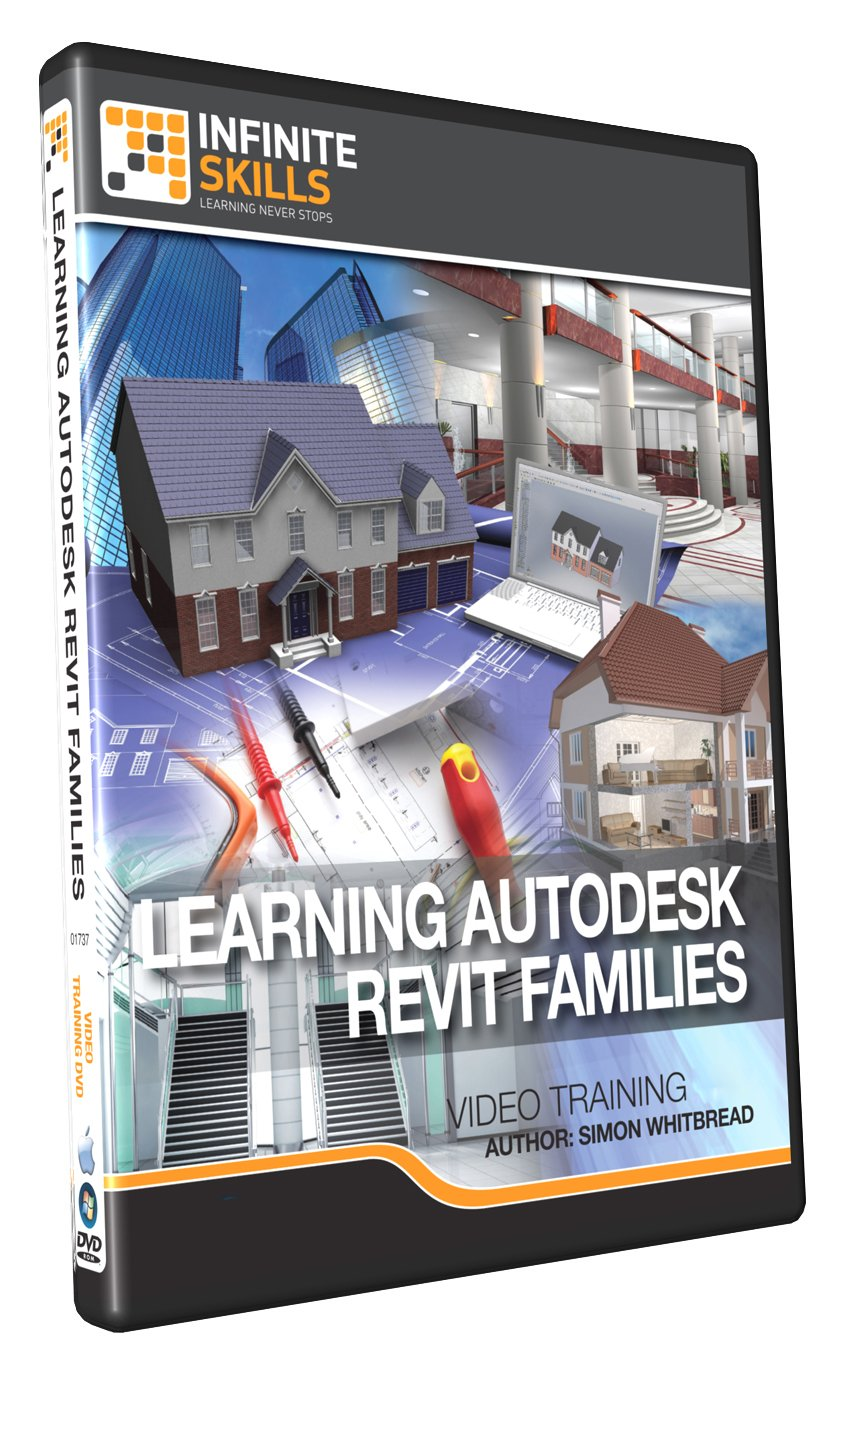 Autodesk Revit Families Training DVD